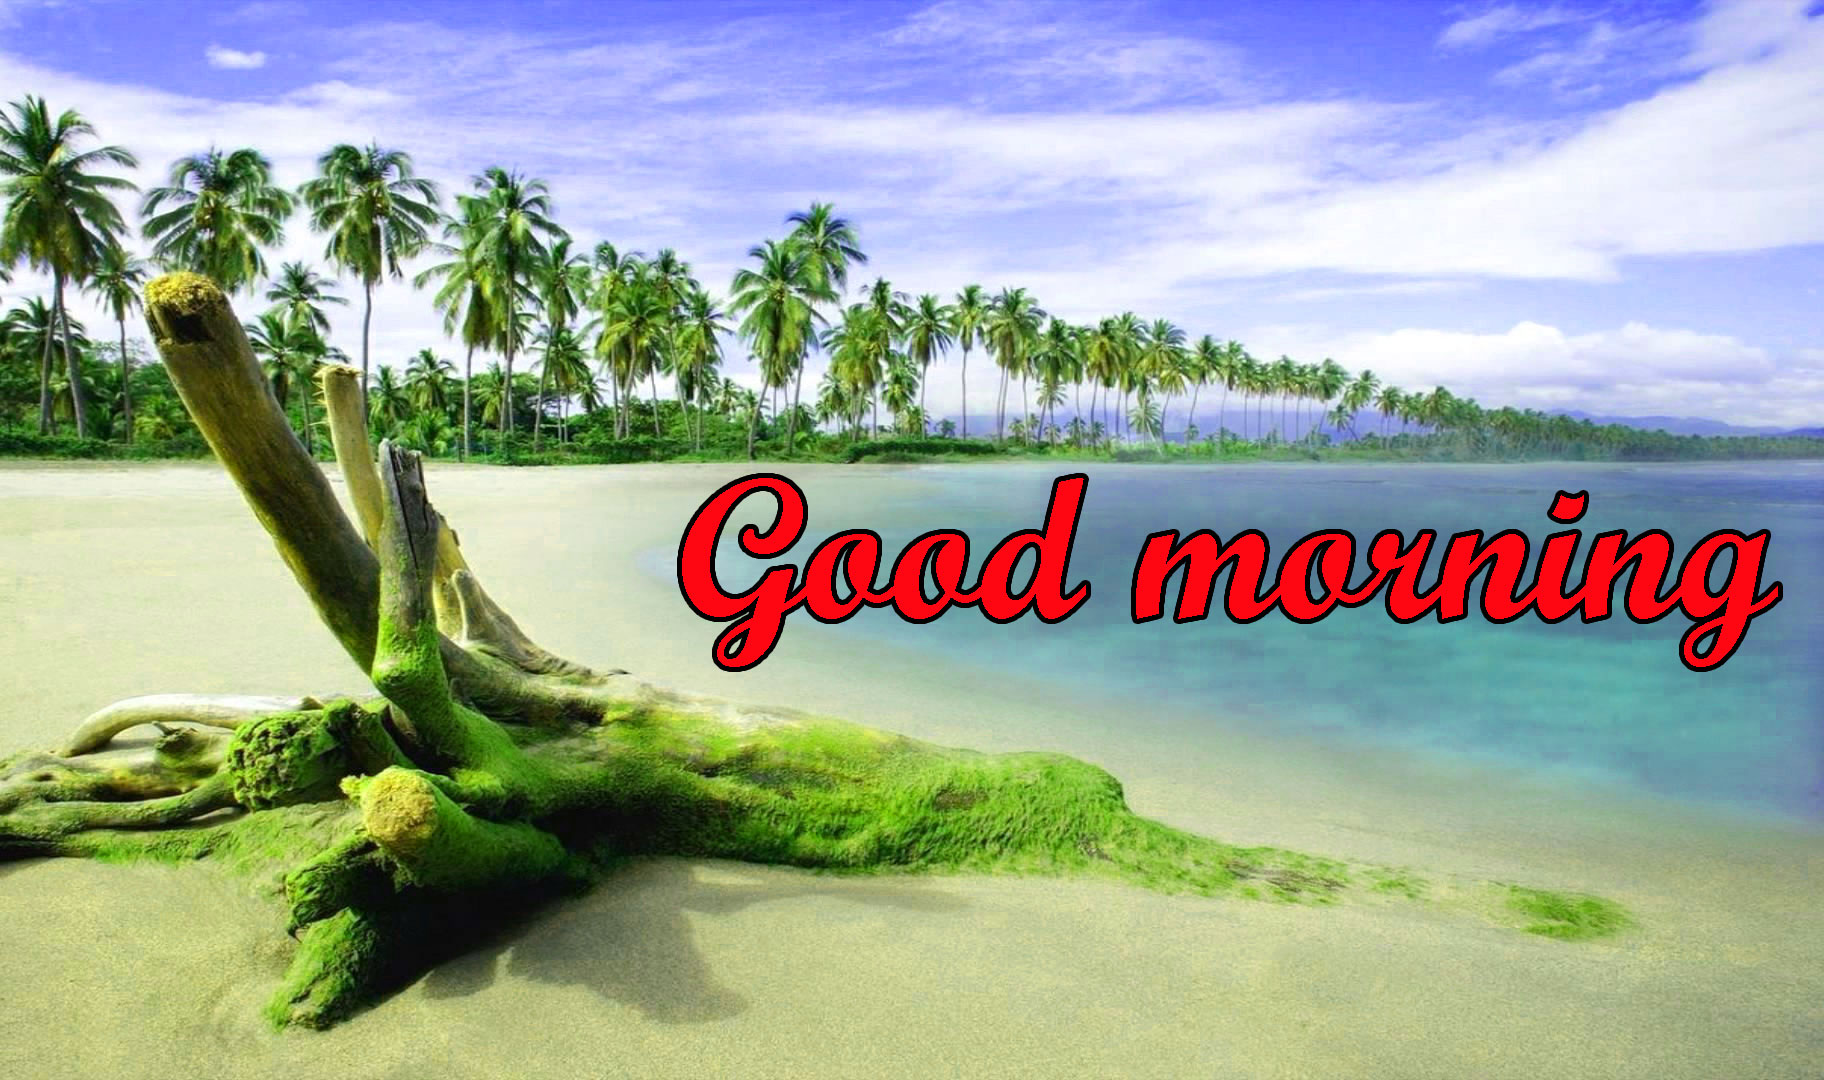 BEAUTIFUL 3D GOOD MORNING IMAGES WALLPAPER PICS DOWNLOAD